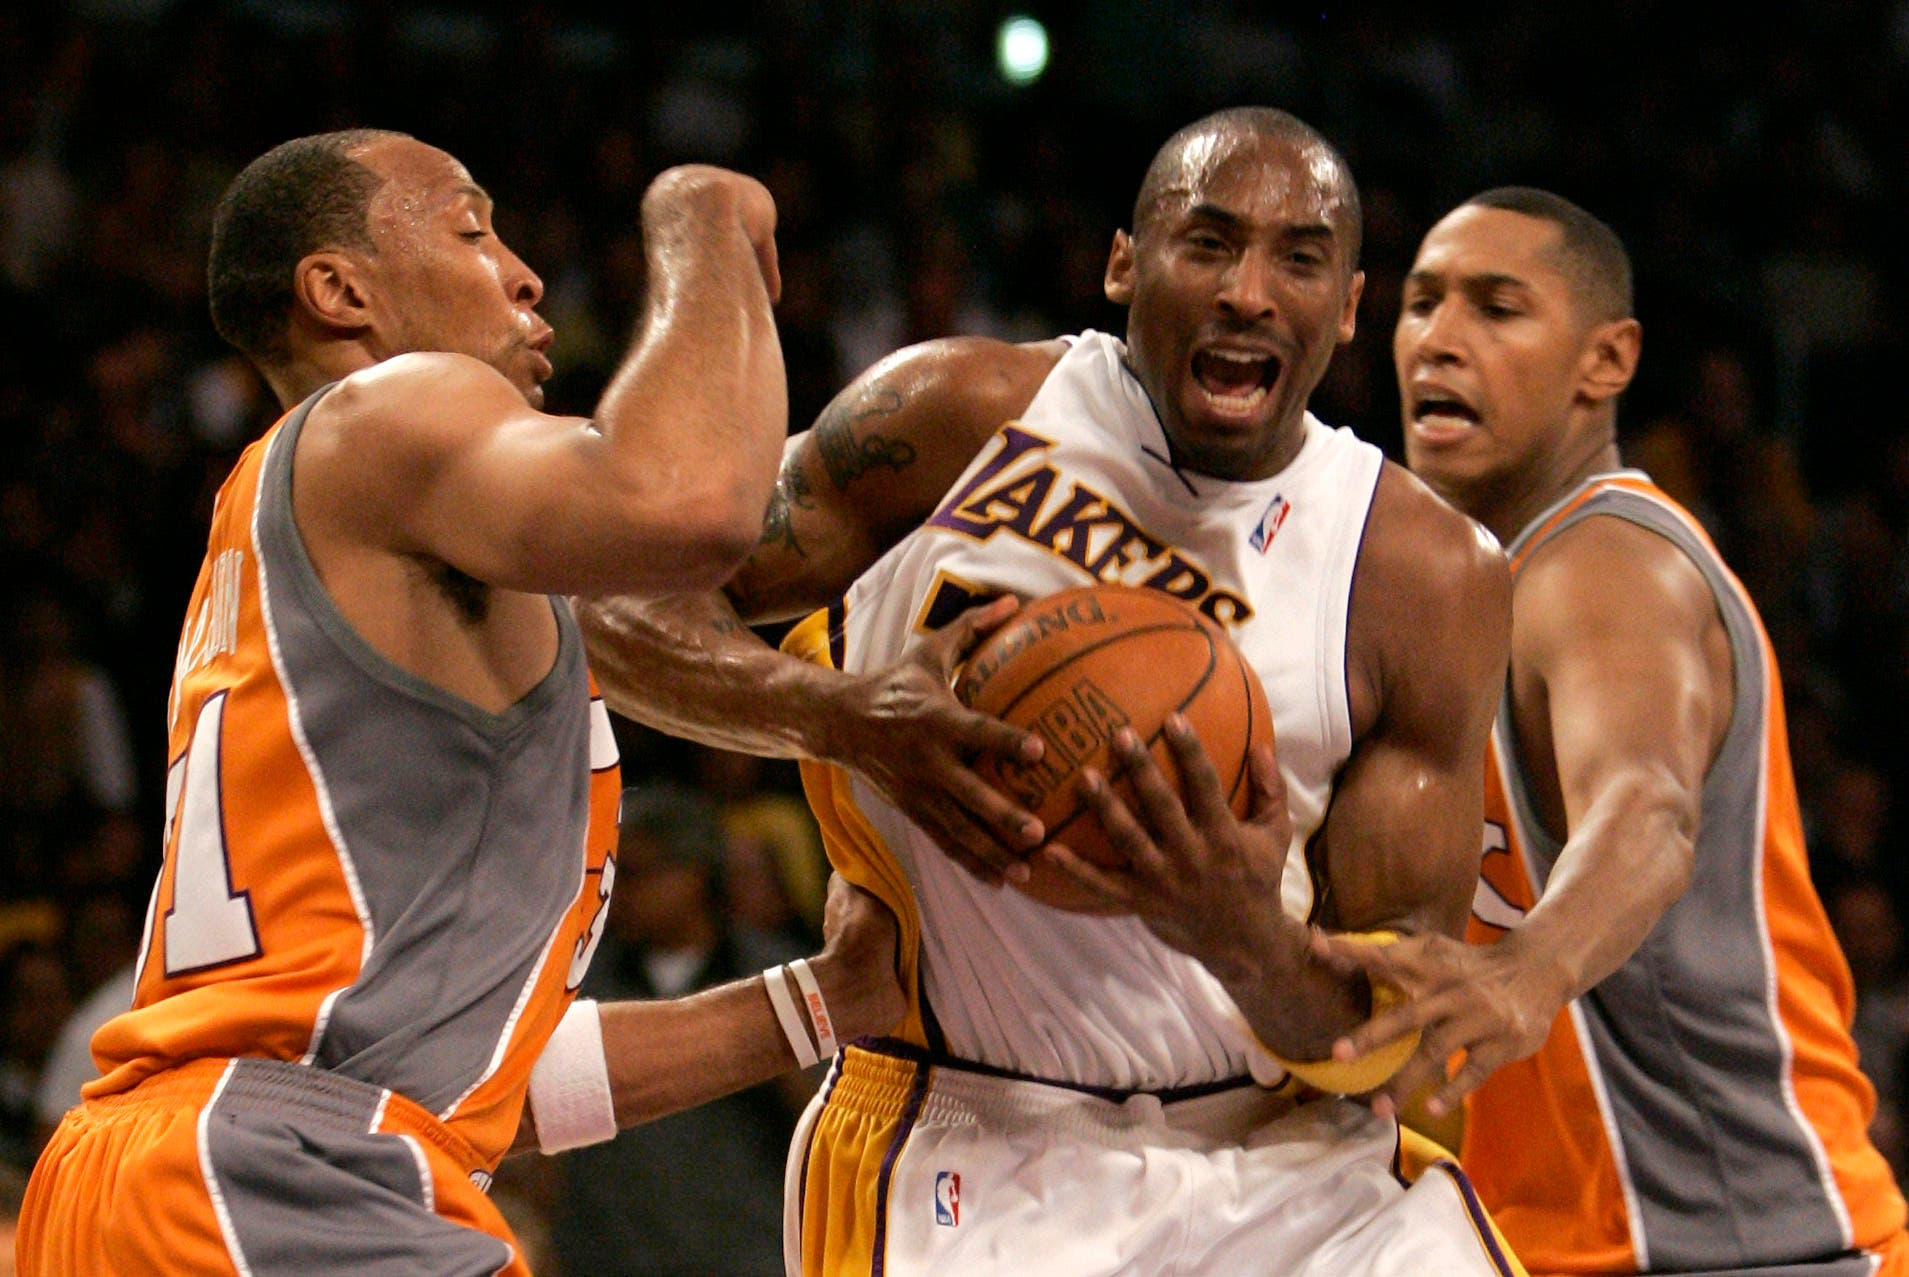 Kobe Bryant, center, is guarded by Phoenix Suns' Shawn Marion, left, and Boris Diaw during the first half of their Western Conference playoff basketball game in Los Angeles, Sunday, April 29, 2007. (AP)